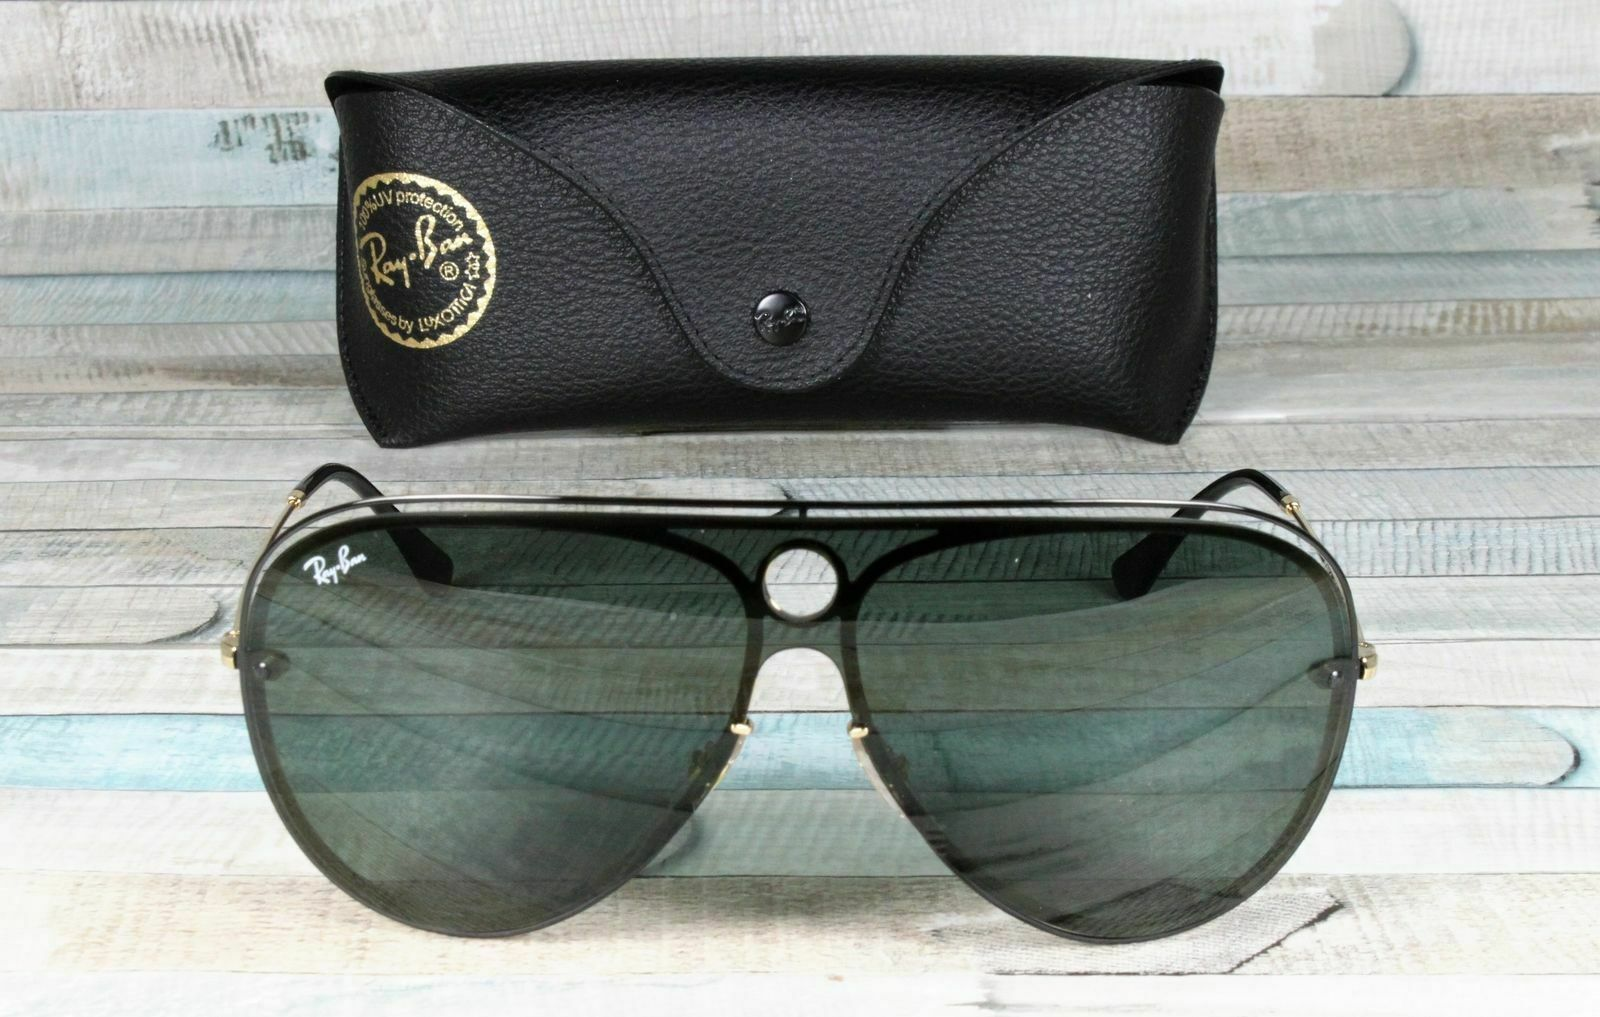 57a7270c05 Ray Ban Rb3605n 187 71 Shiny Black on Gold Dark Green 32mm Unisex Sunglasses  for sale online